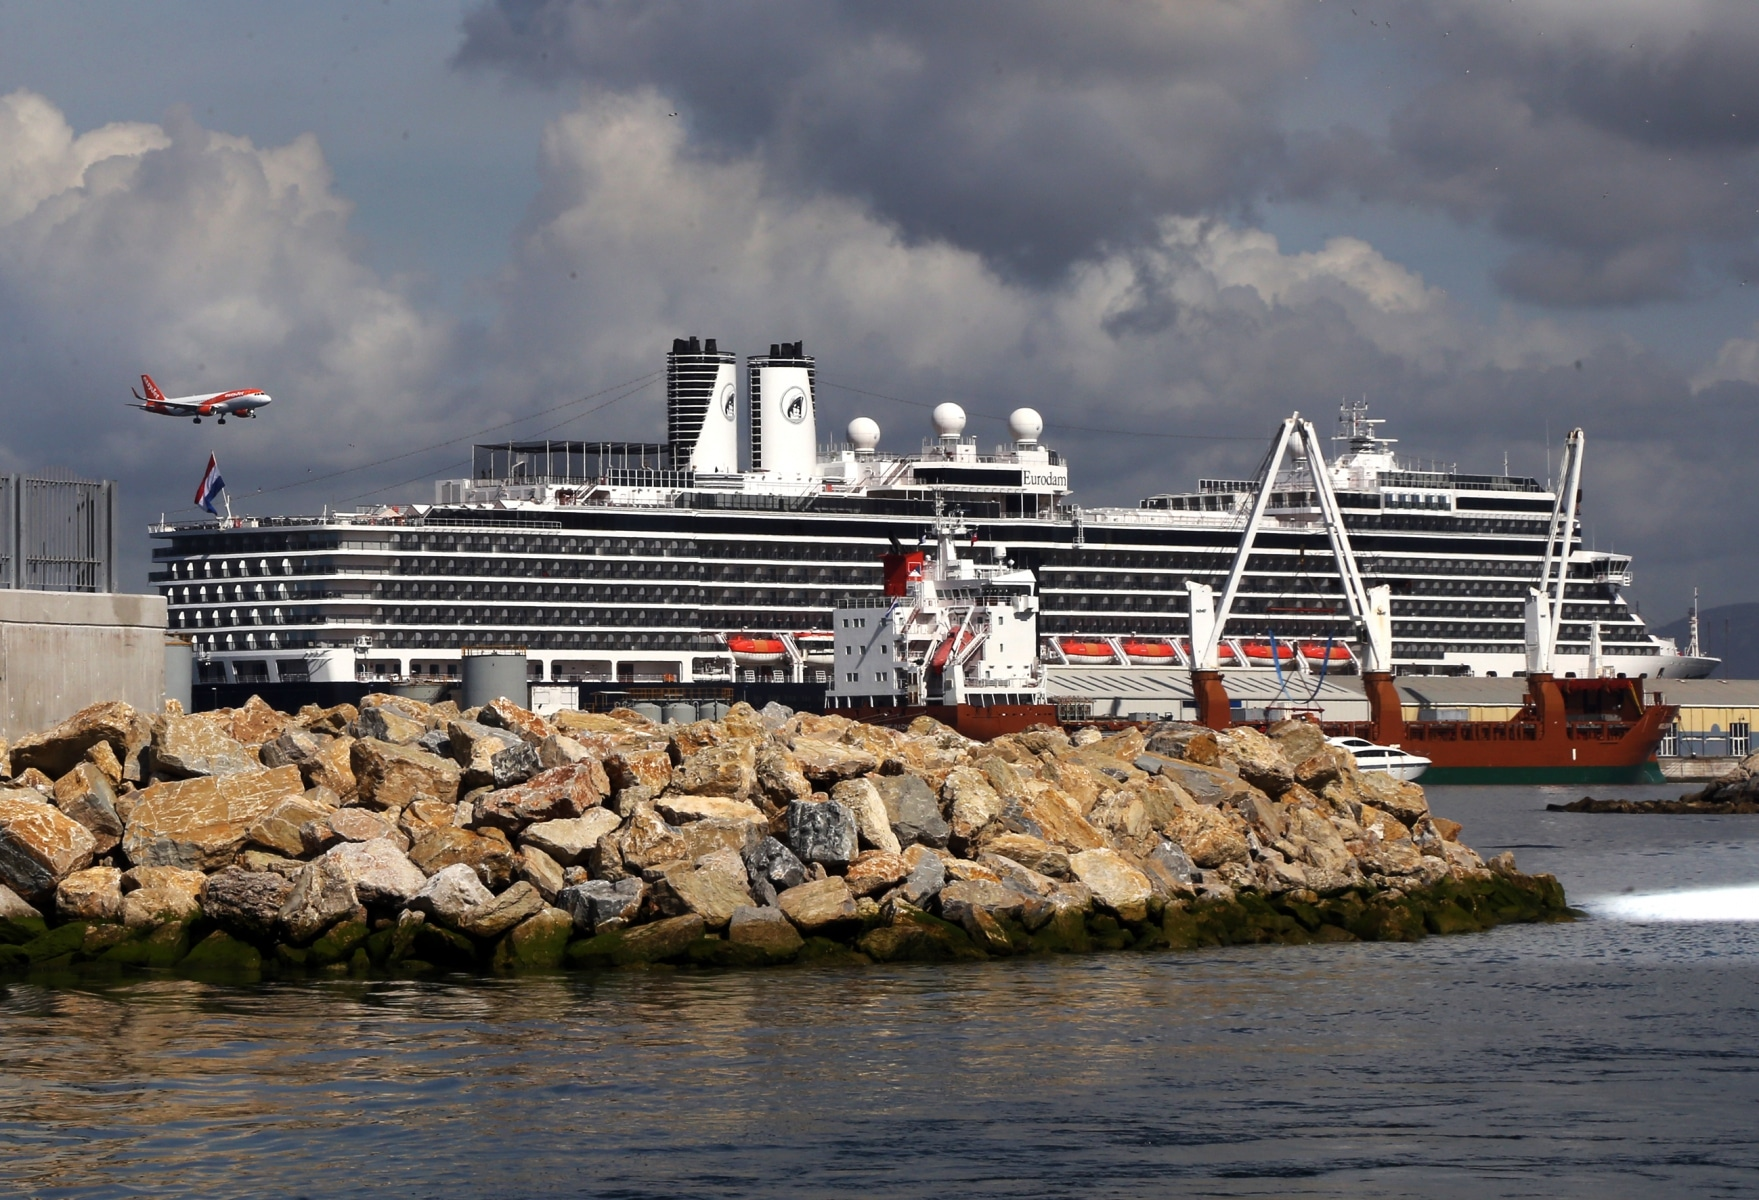 cruise-liners-14_25762530208_o